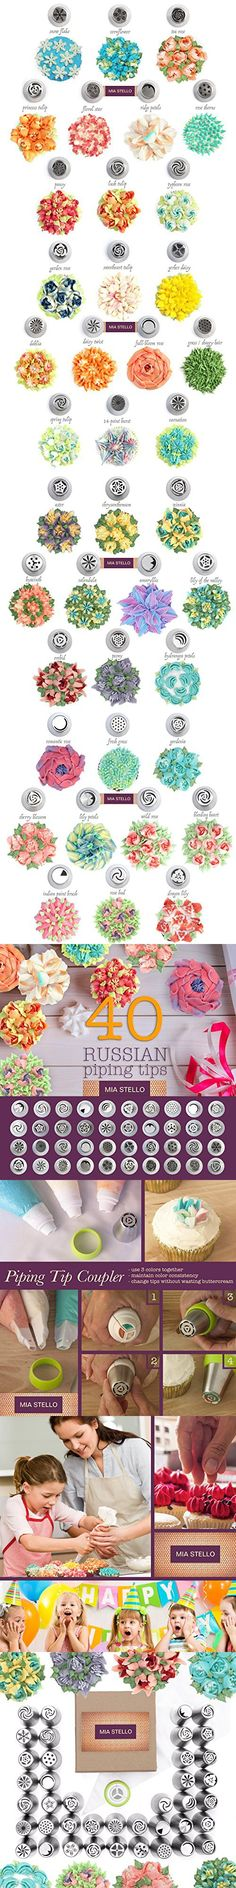 Russian Piping Tips, Bags and Coupler Set, 46 pieces, Cake, Cupcake, Cookies and Pastry Decoration, Latest Designs